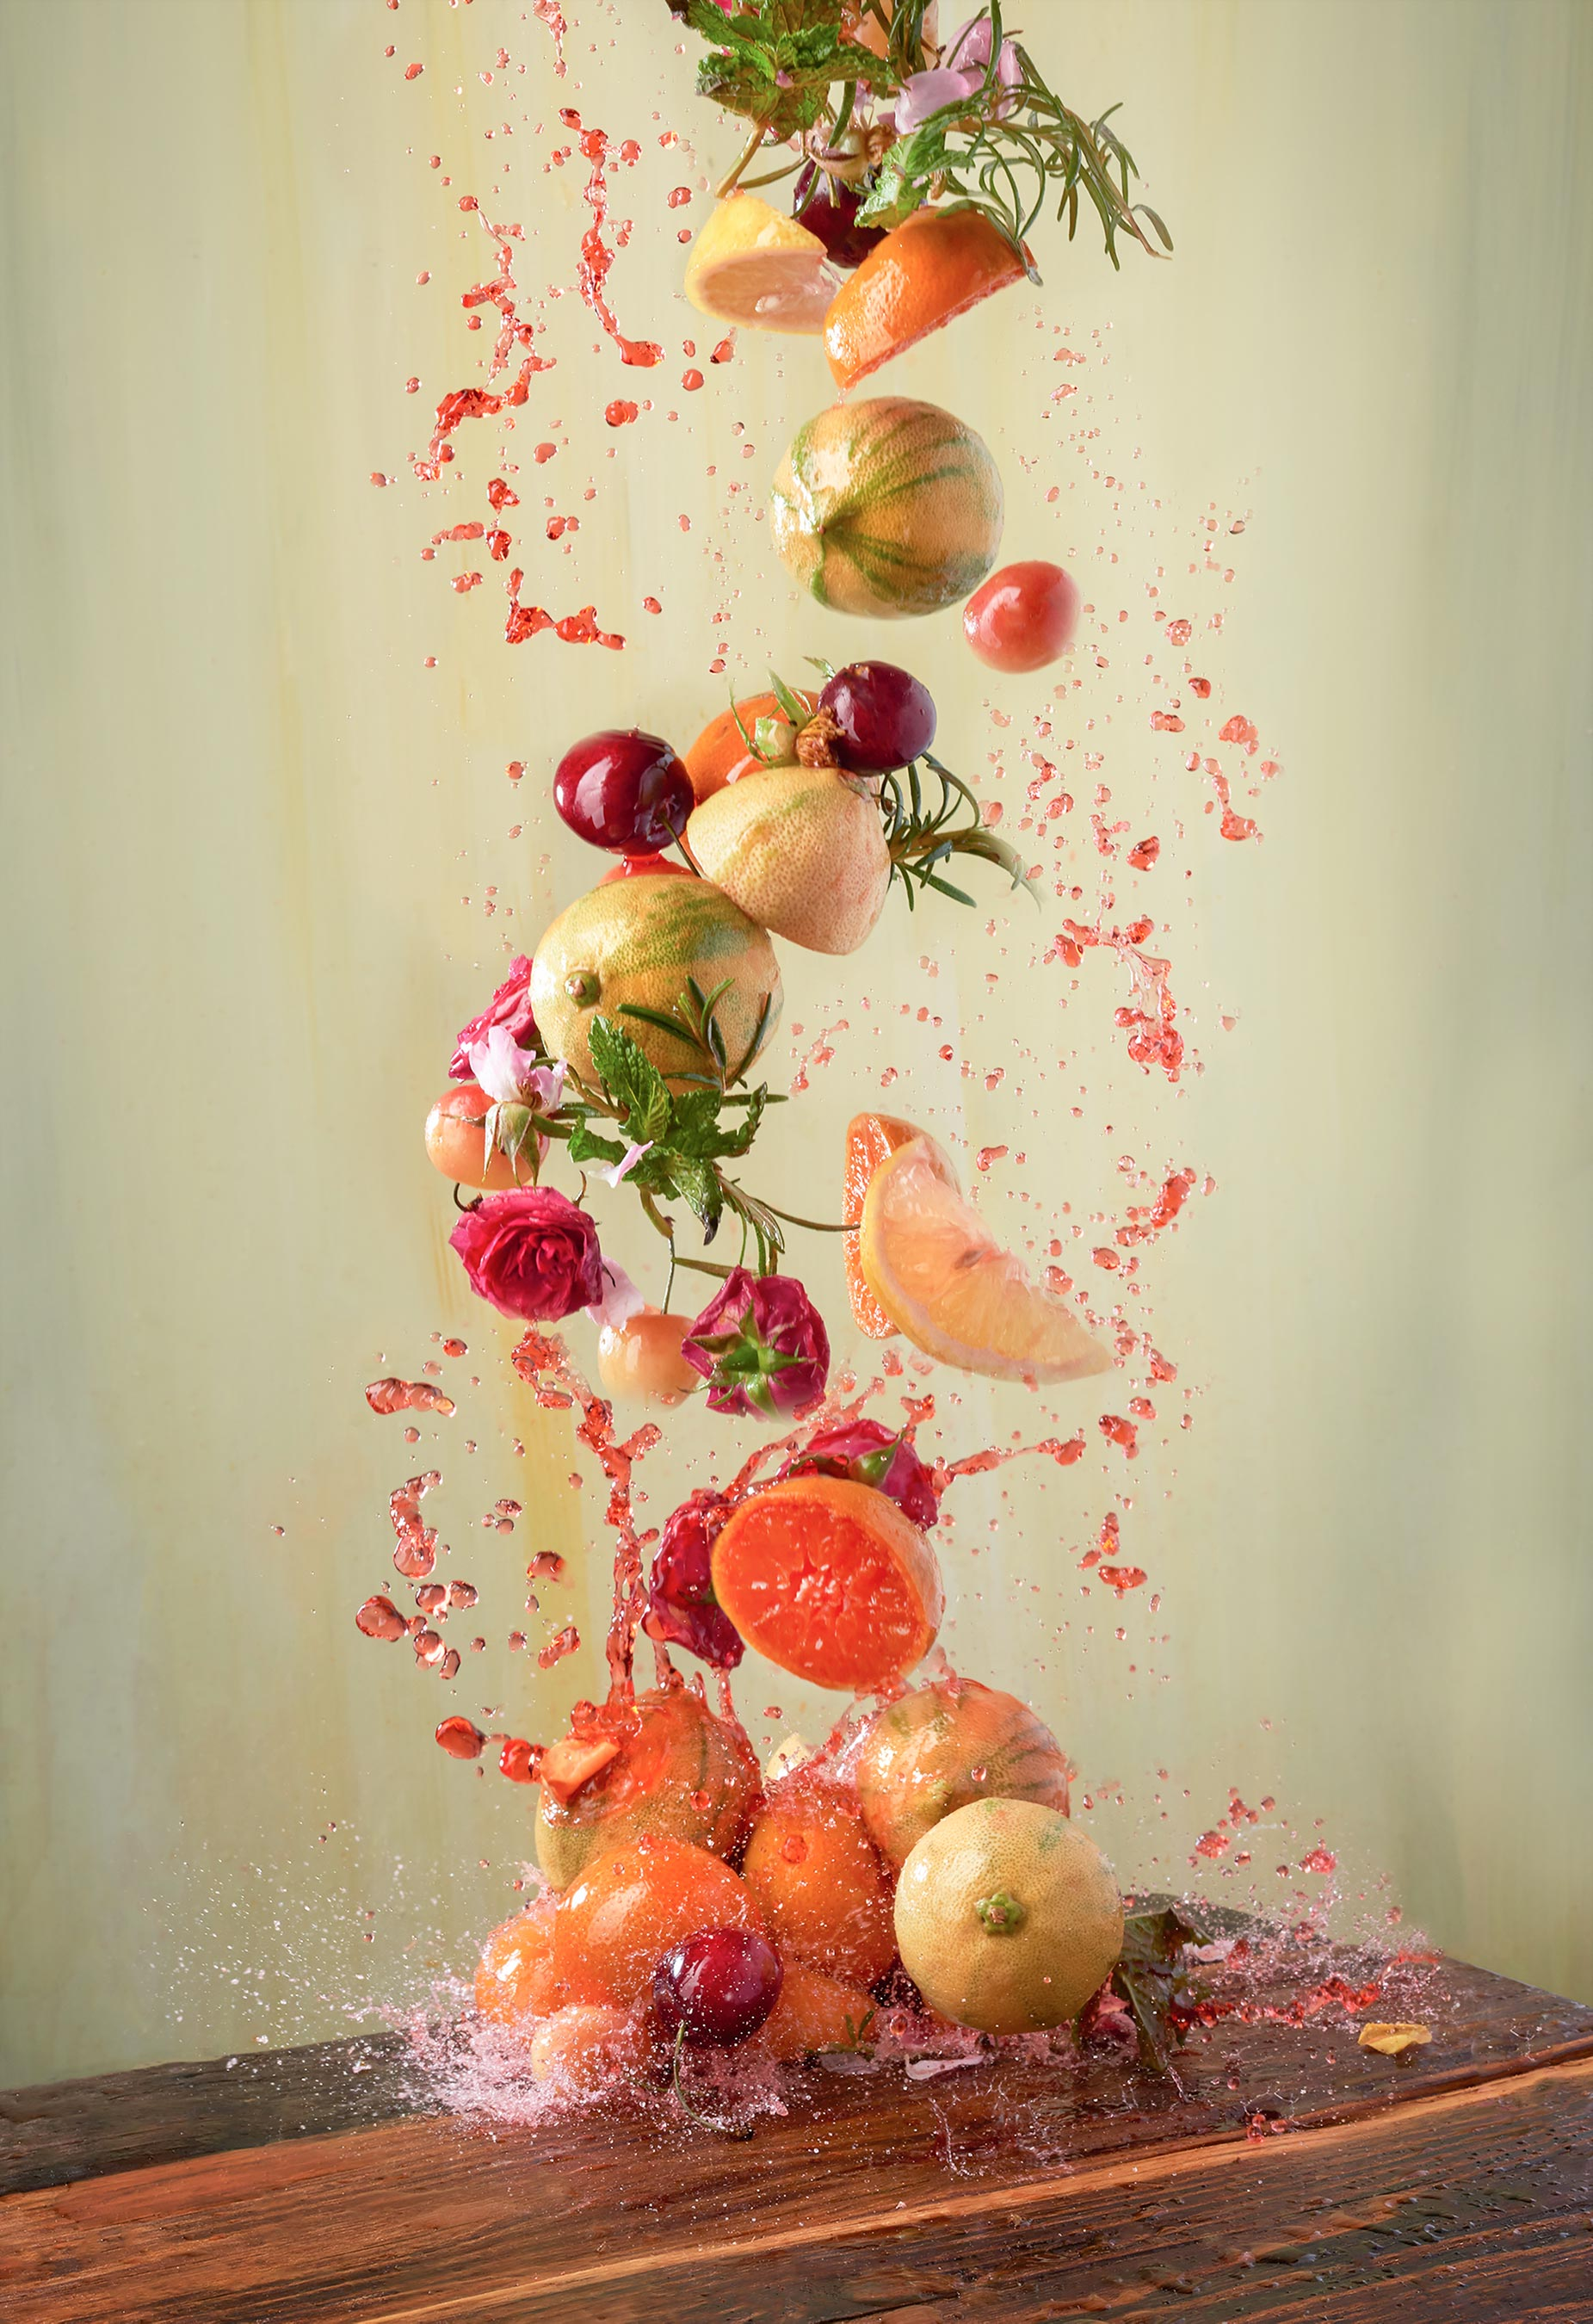 Fruit Punch Splash | Steve Hansen Seattle Food Photographer